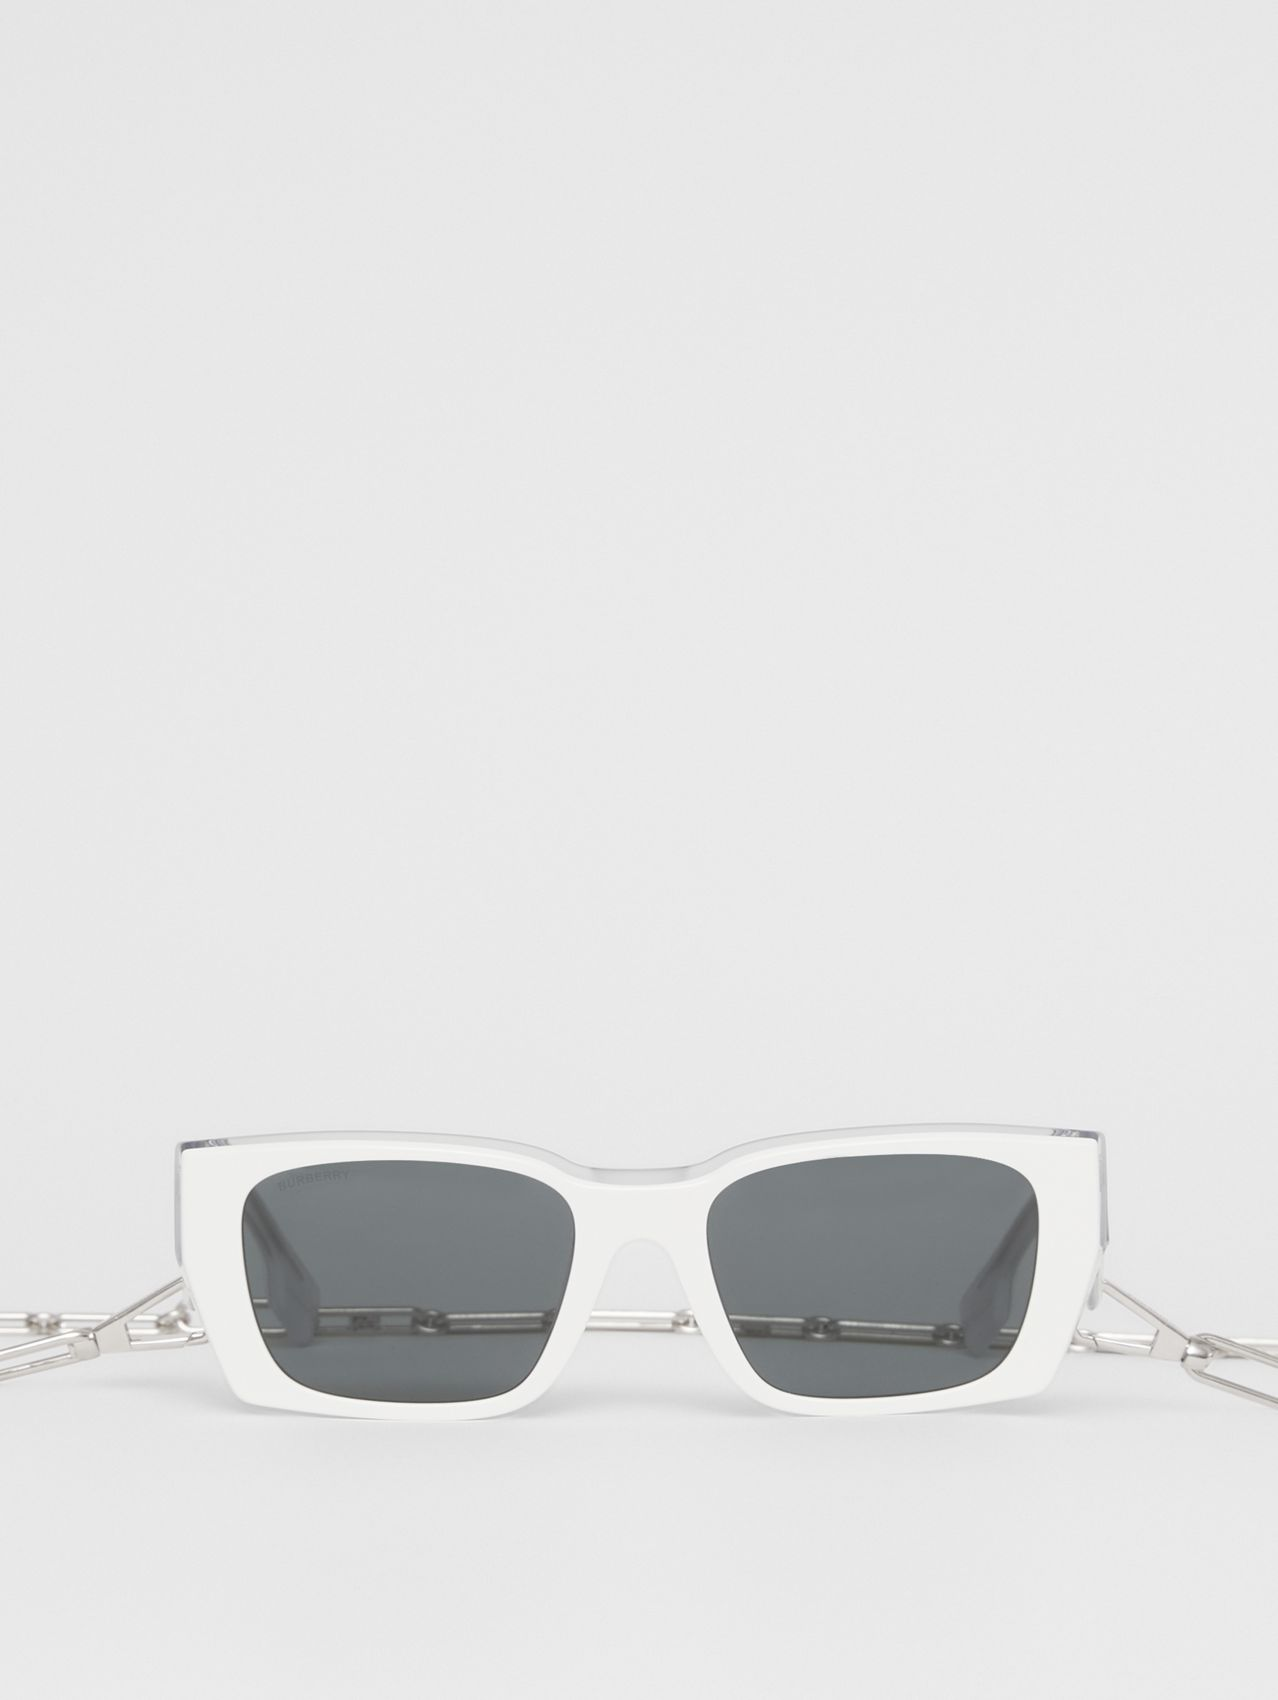 B Motif Rectangular Frame Sunglasses with Necklace in White